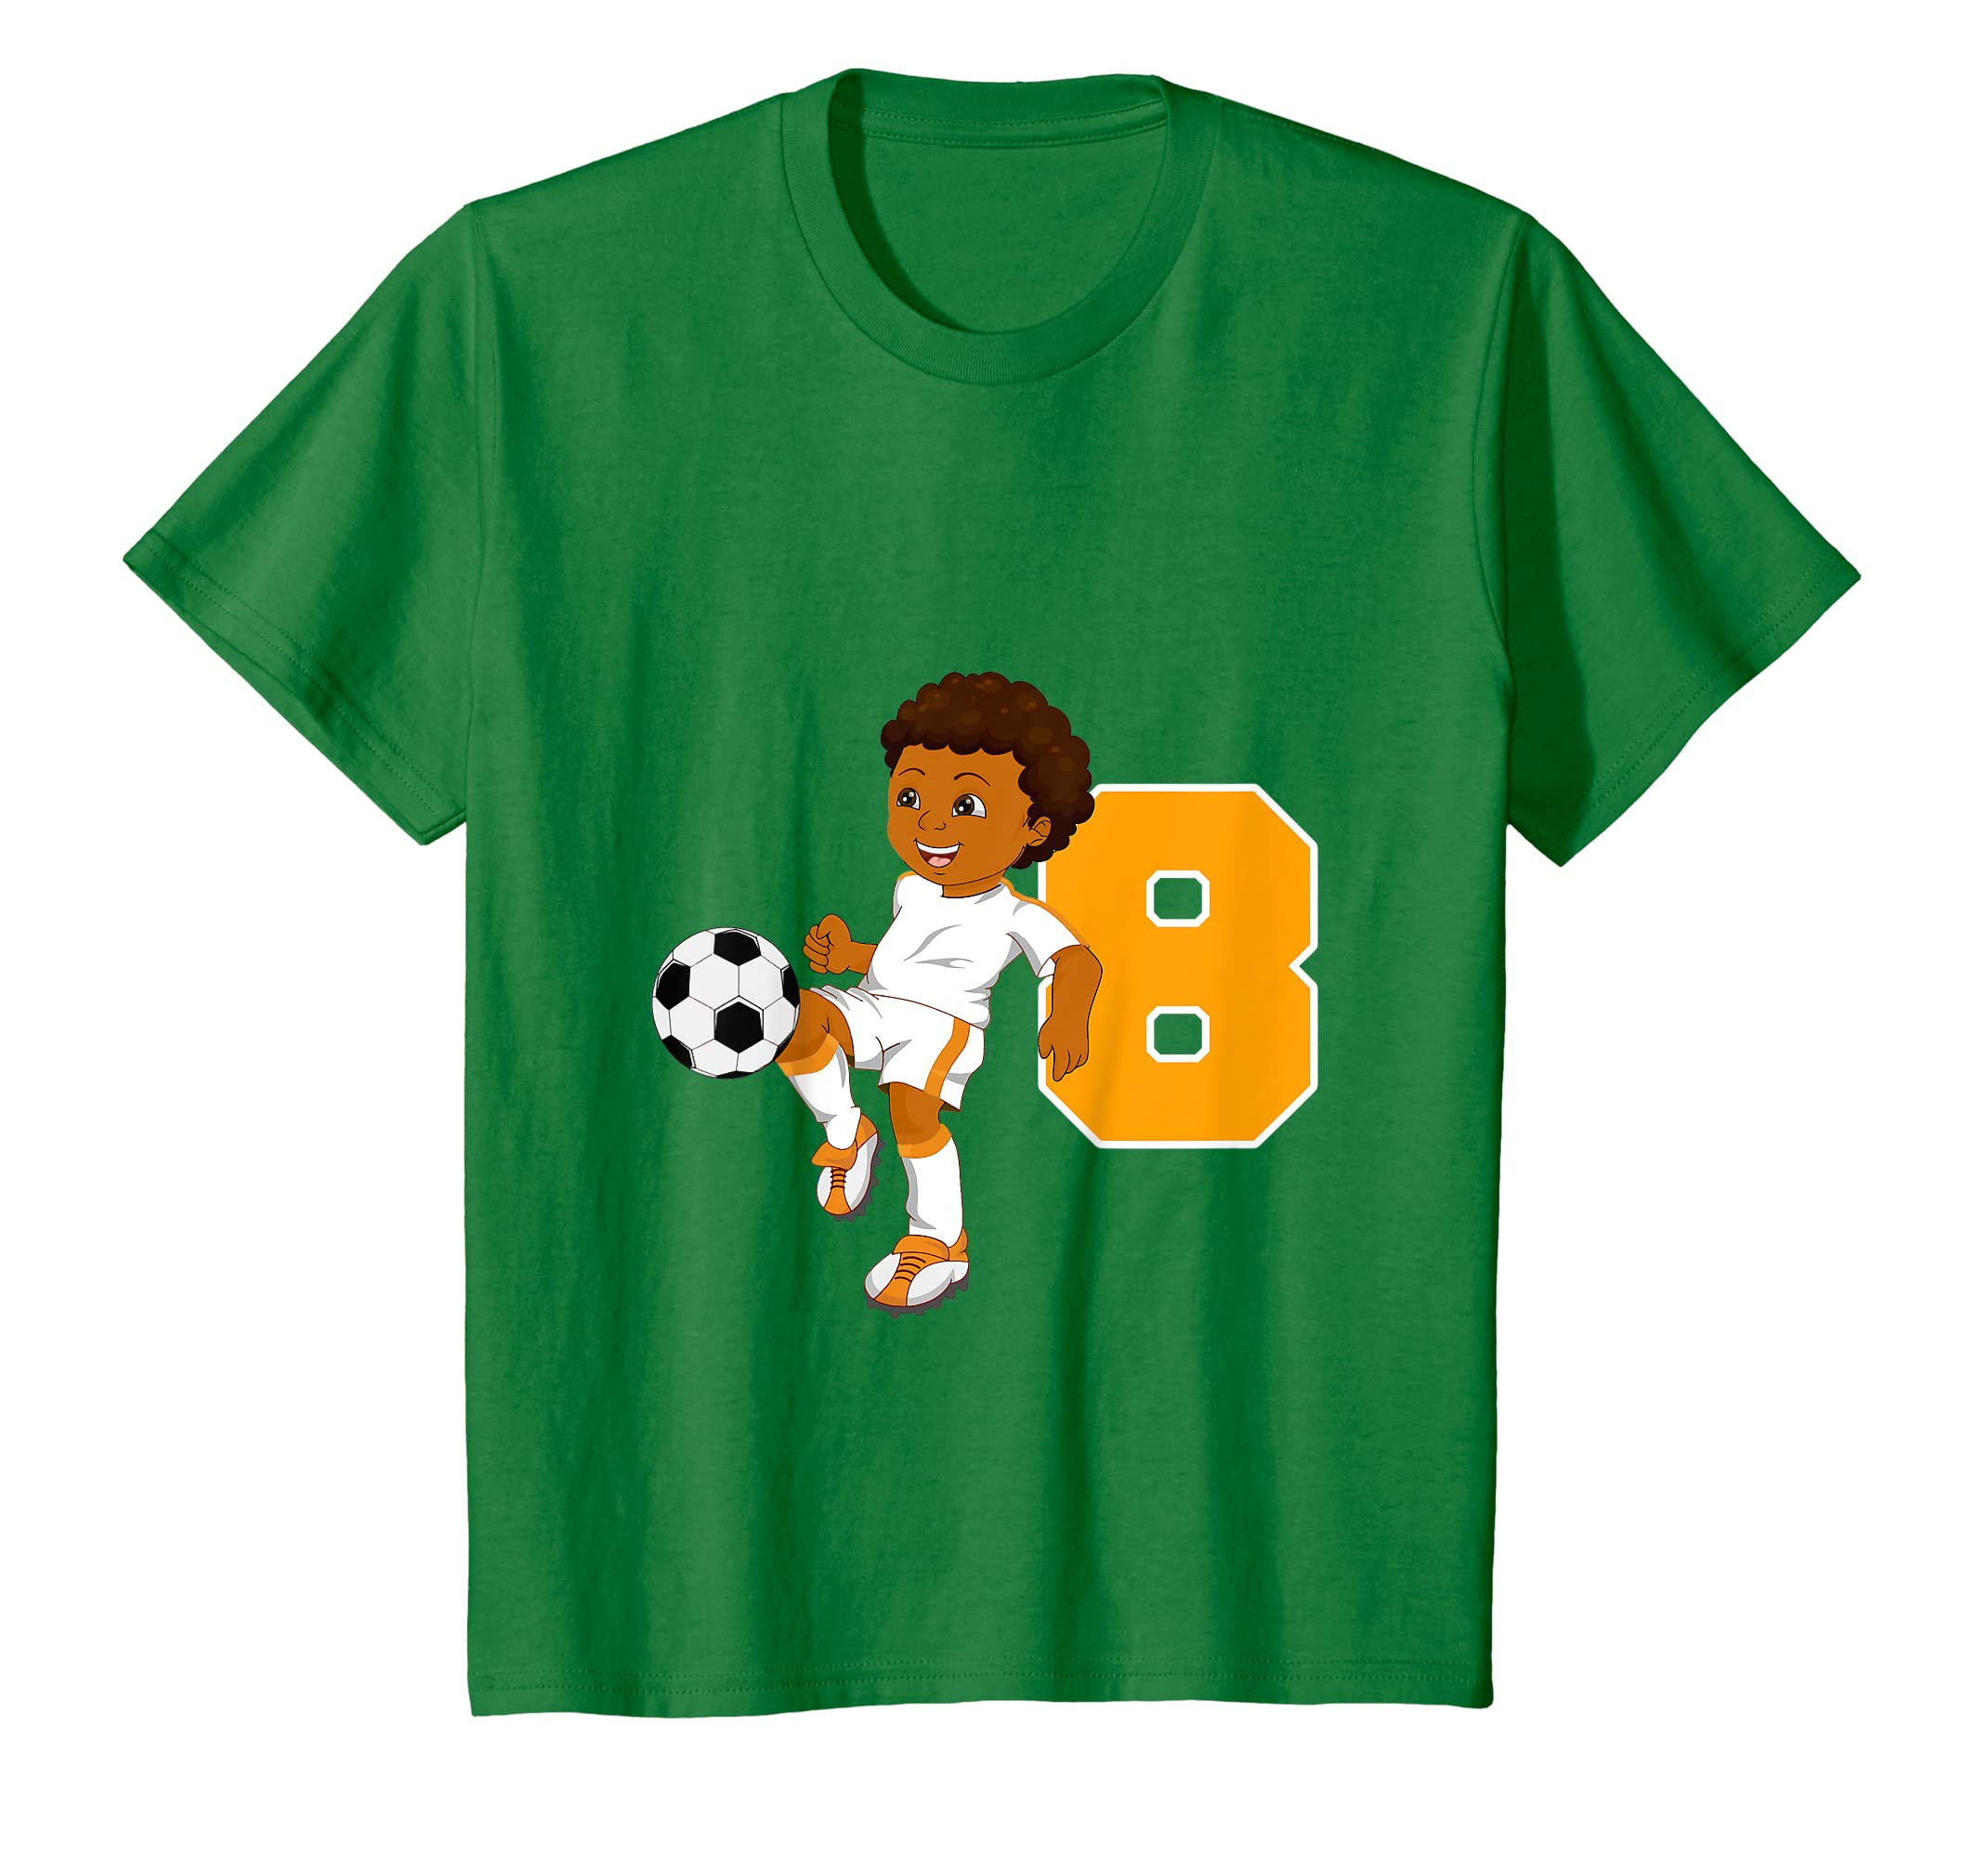 a93dc64309f Amazon.com  Kids African American soccer age eight t-shirt for boys   Clothing